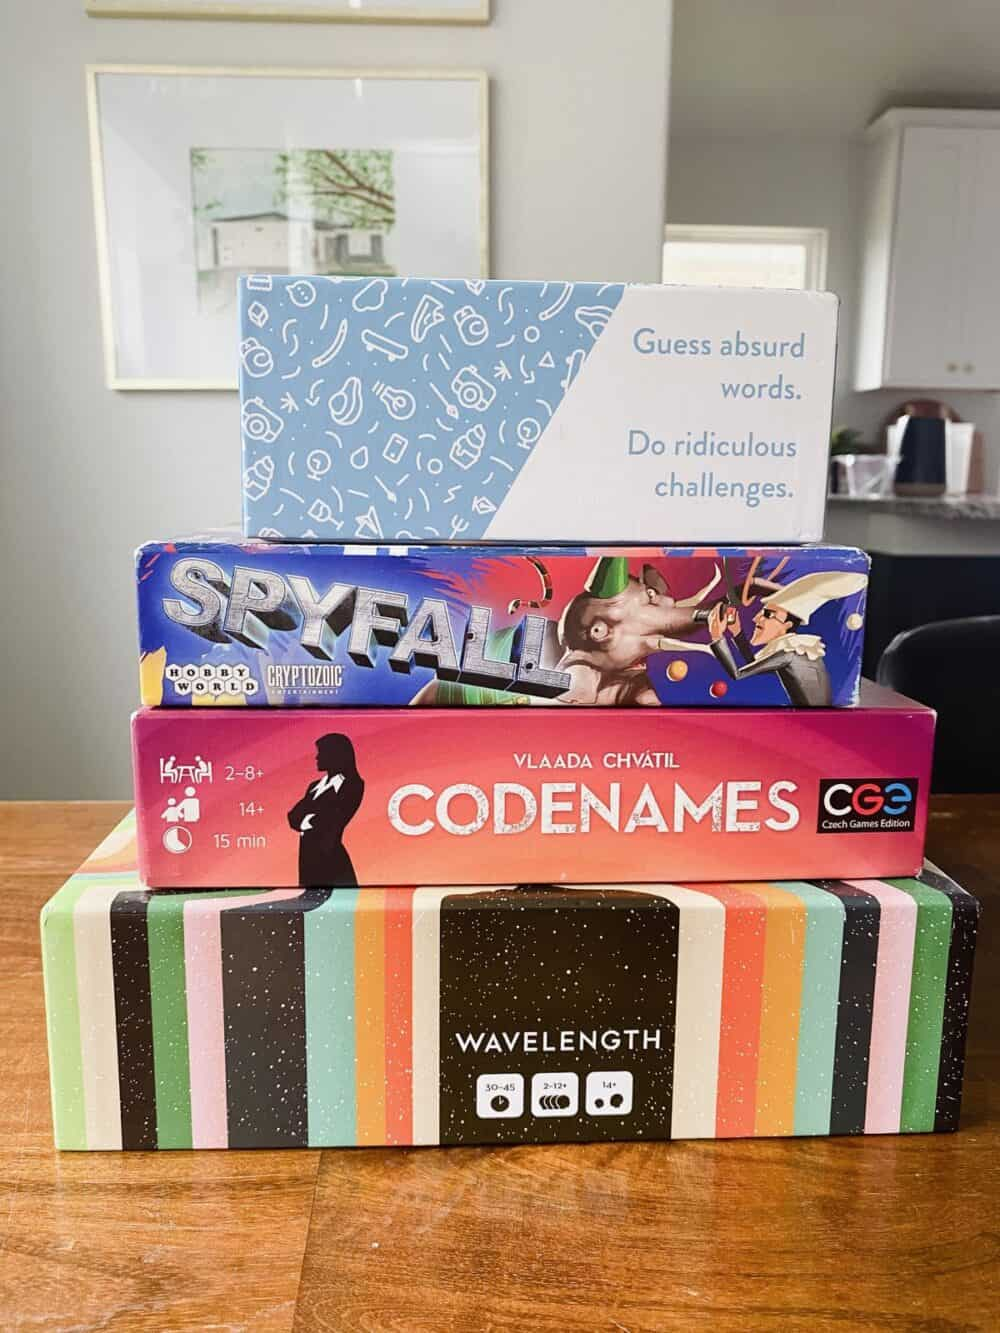 Stack of board games, includes Wavelength, Codenames, Spyfall, and Rabble